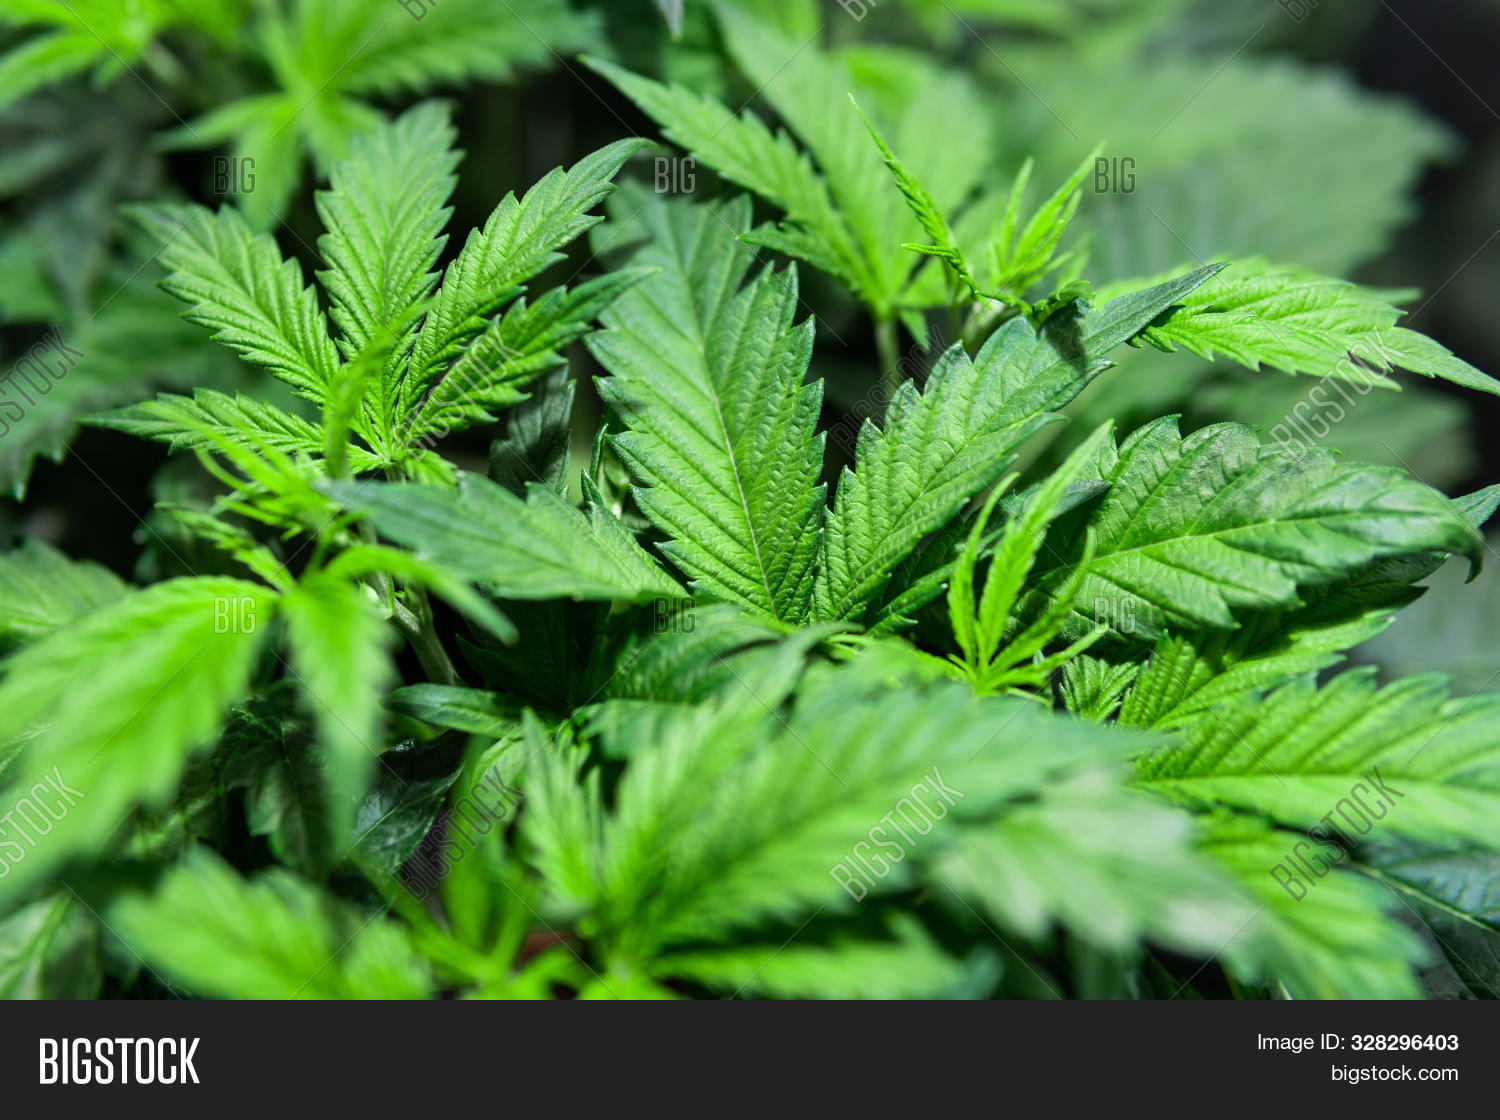 The Concept Of Growing Marijuana. Weed For Recreational Purposes. Hydroponic Method Of Growing Canna